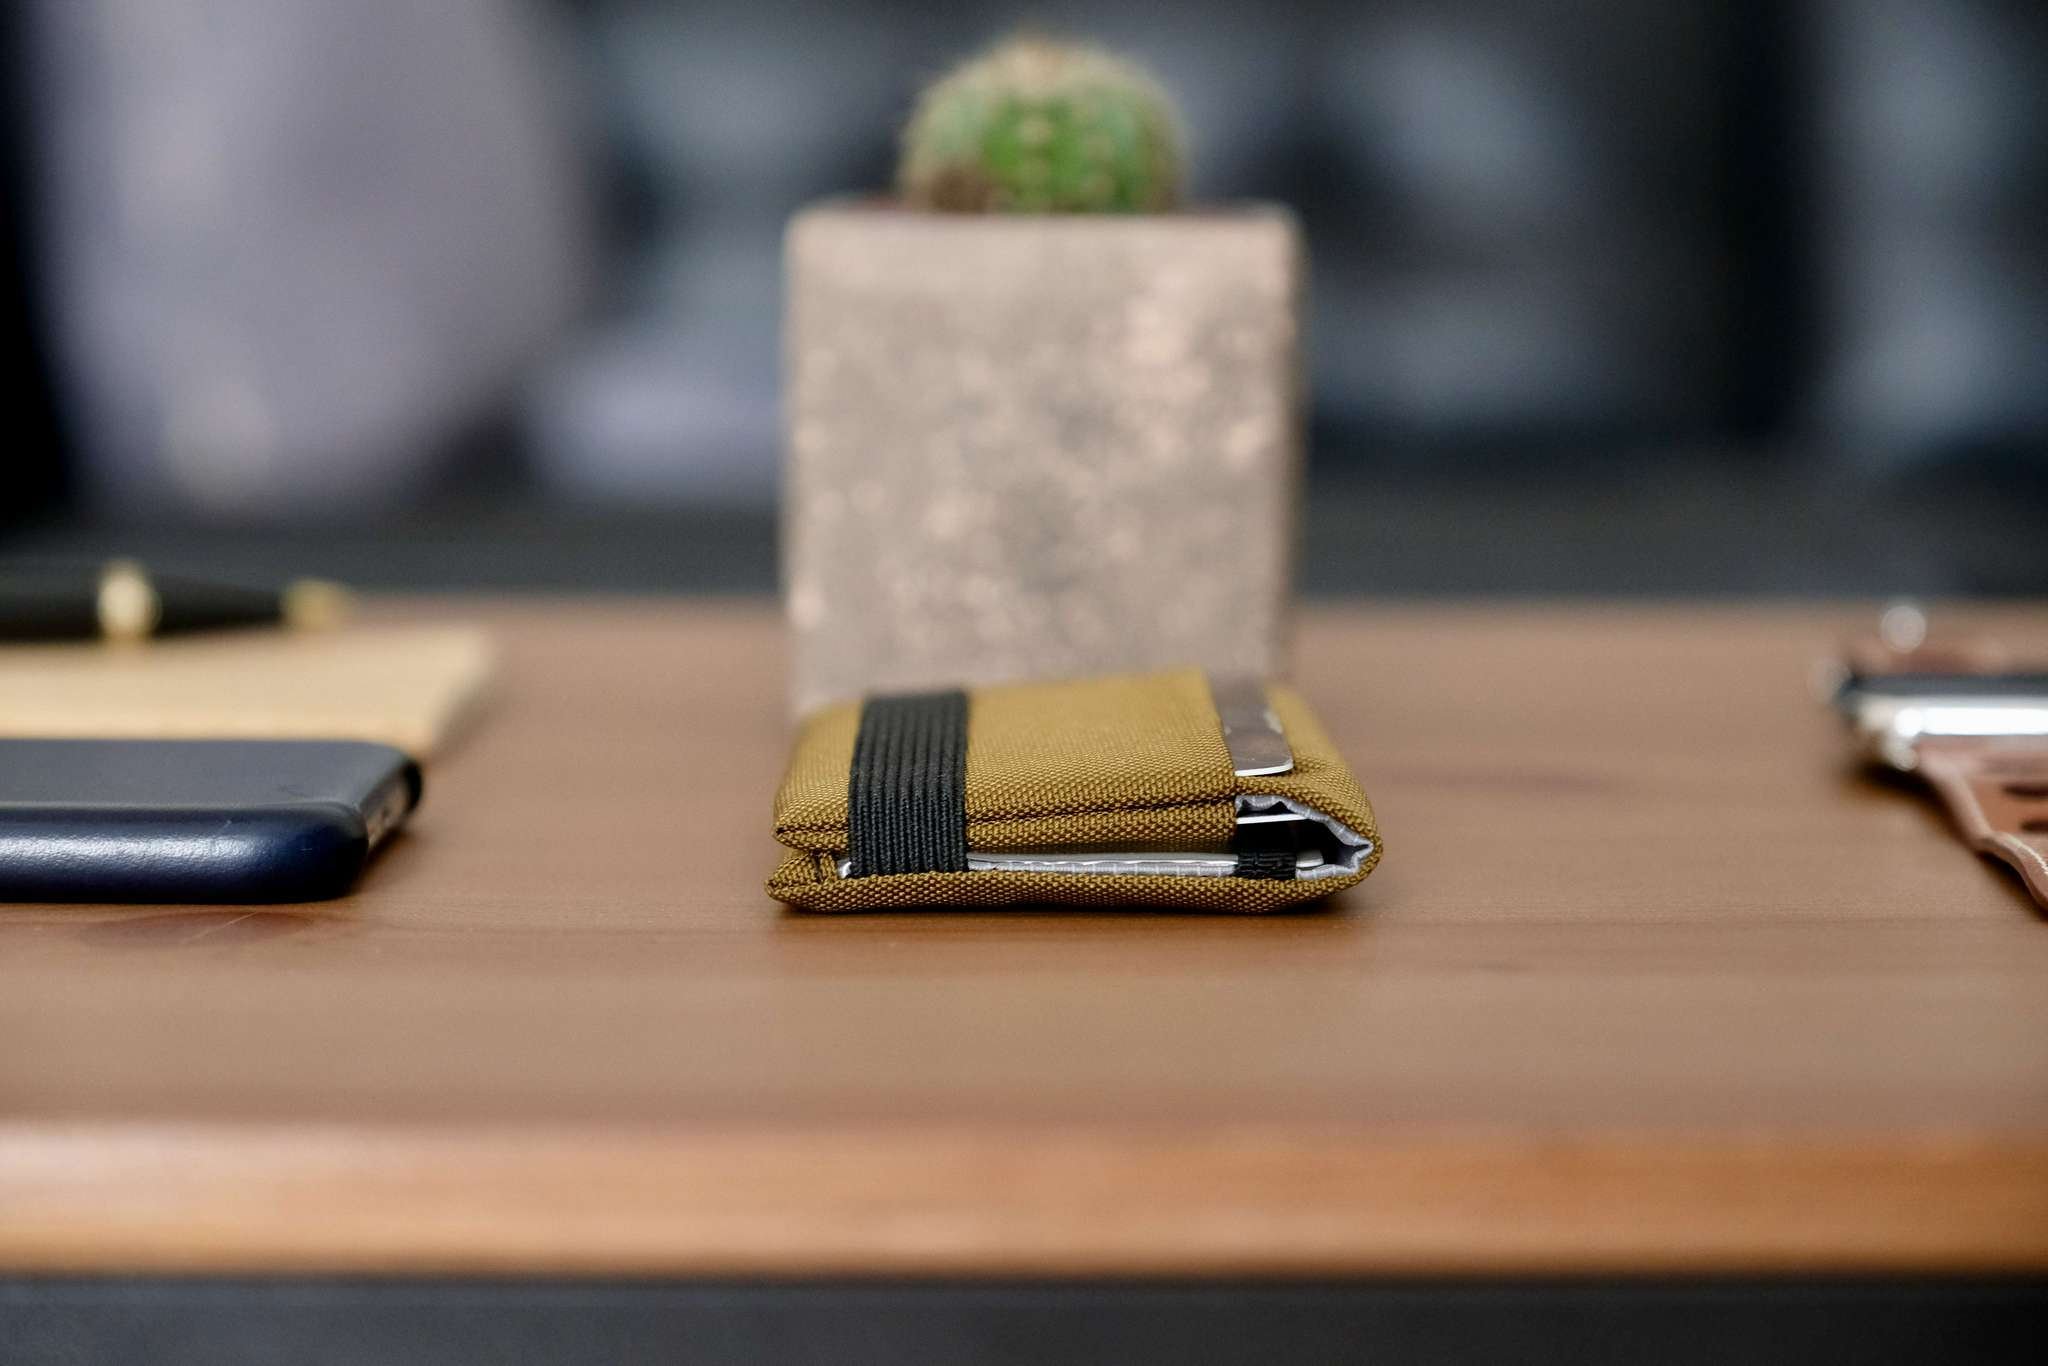 The minimalist wallet comes in multiple colors